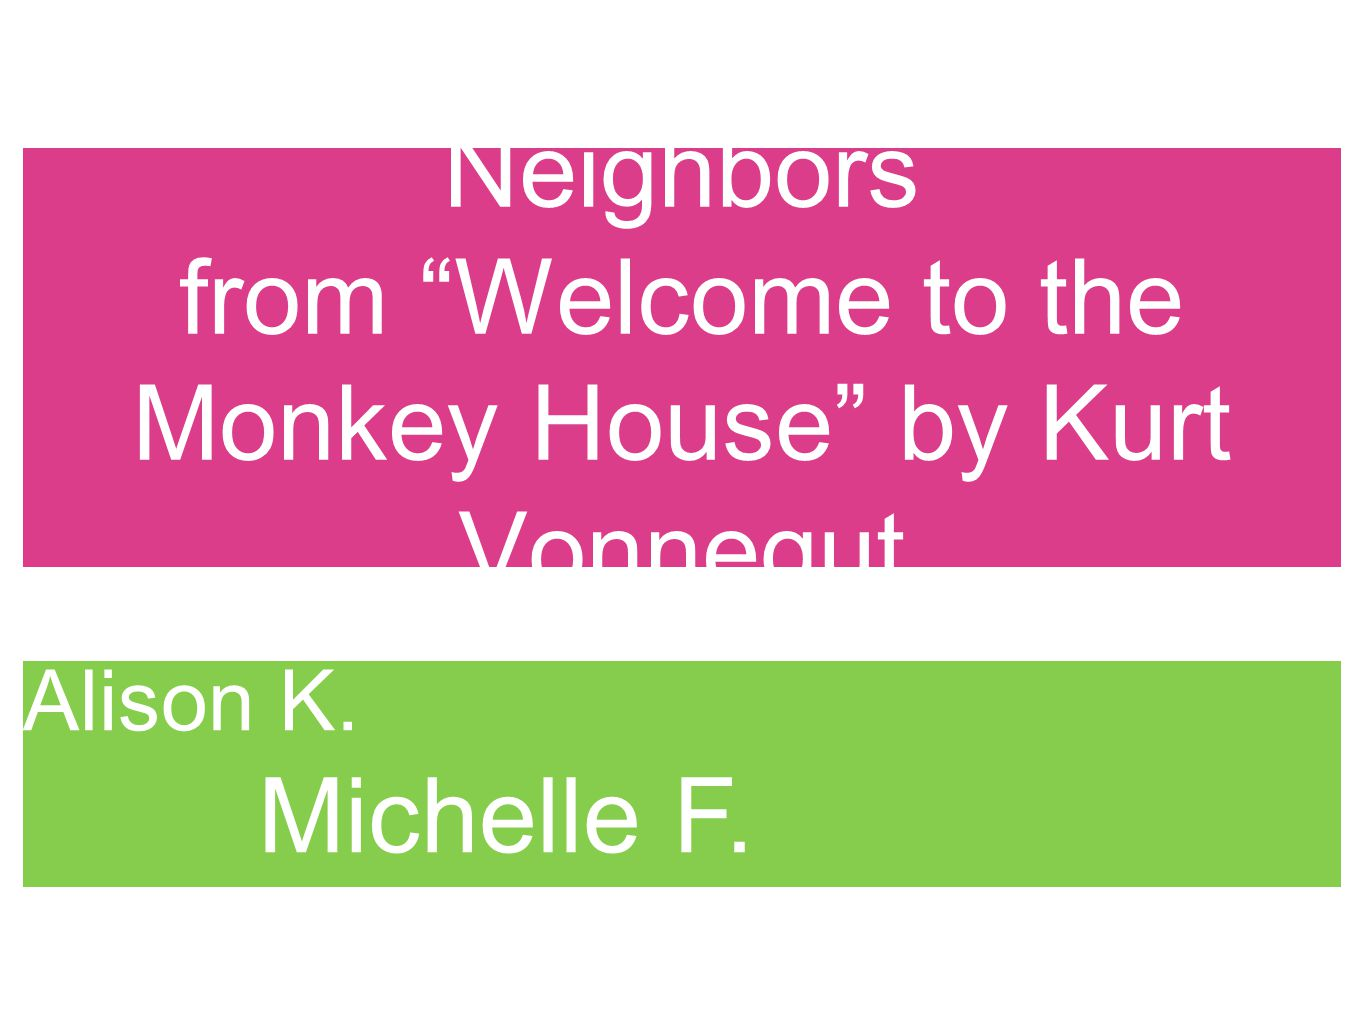 Neighbors from Welcome to the Monkey House by Kurt Vonnegut Kate P. Alison K. Michelle F. Arun A.